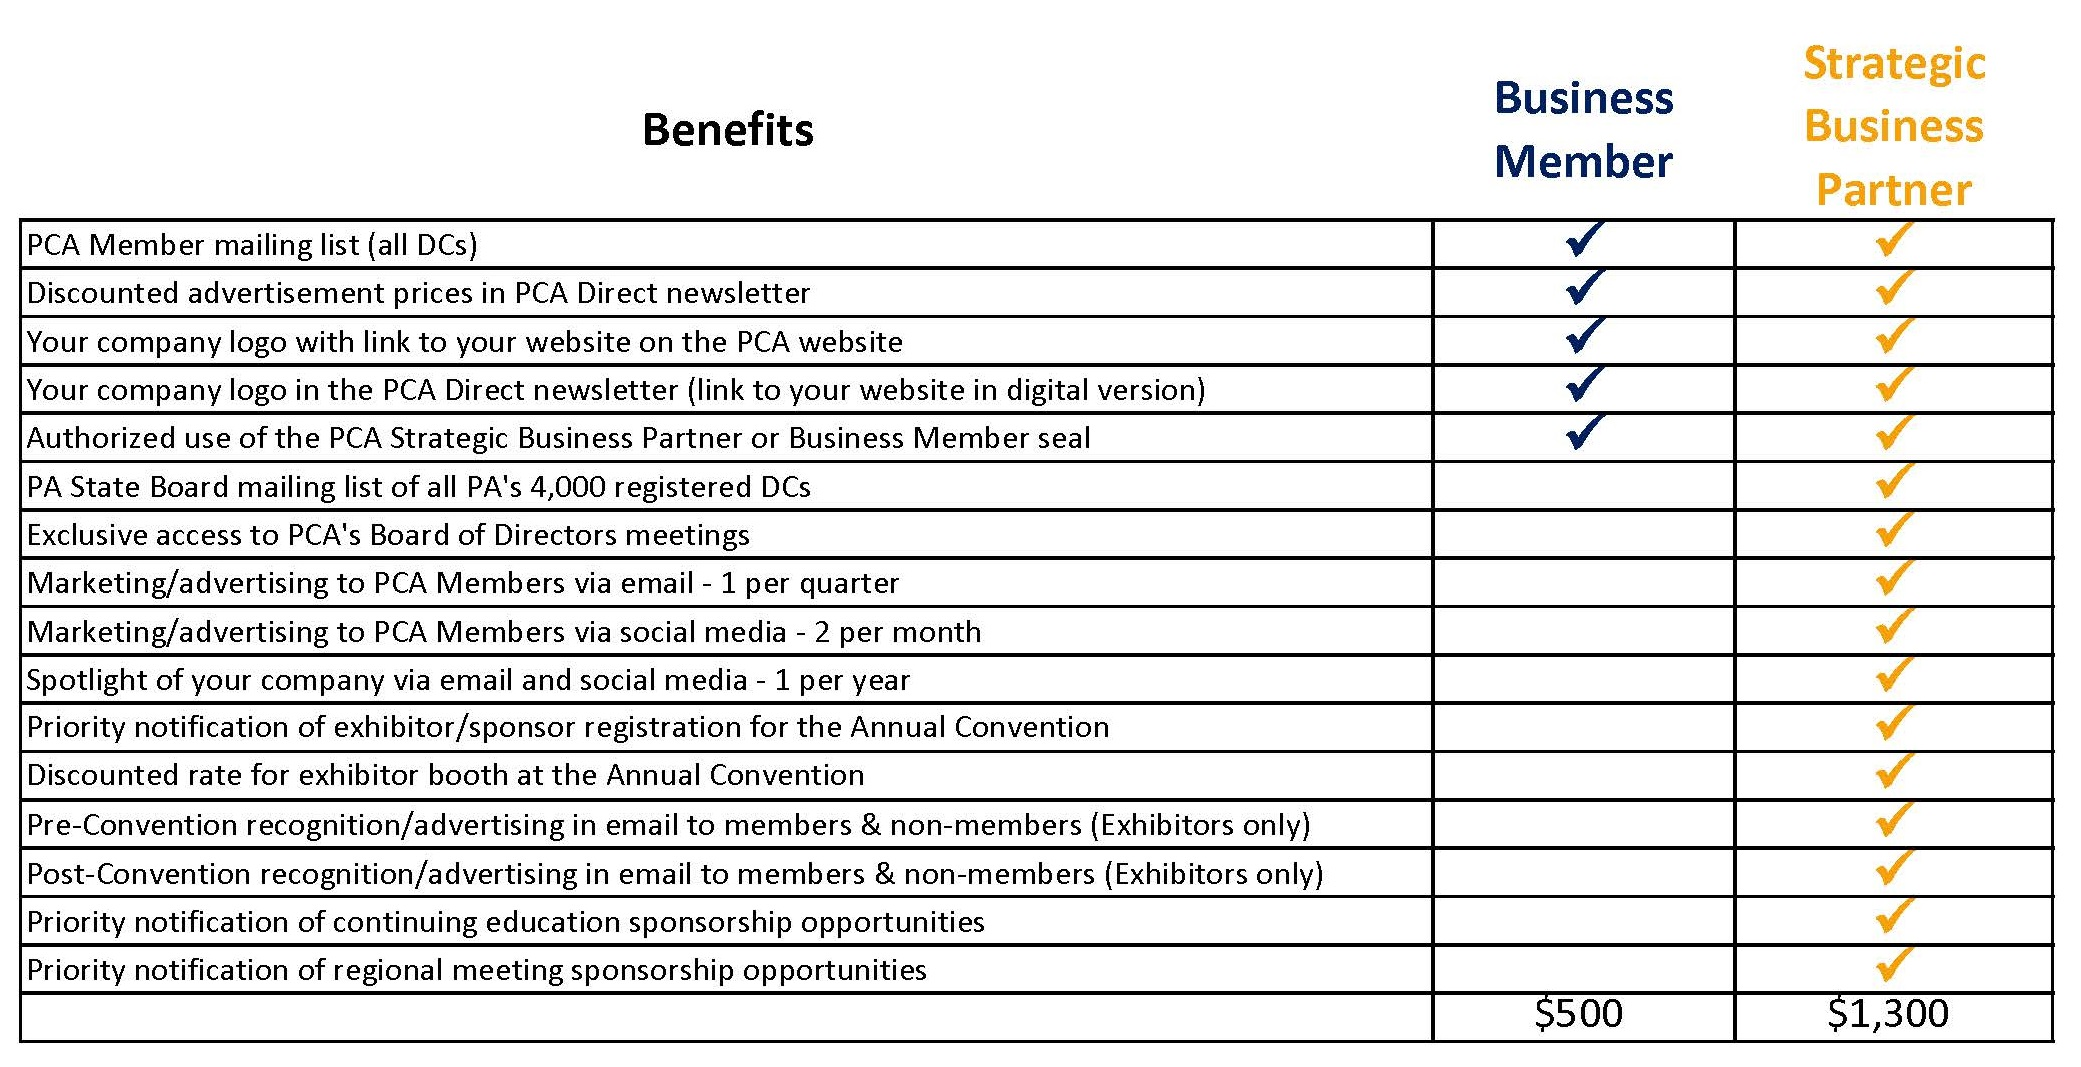 Benefits Chart for SBPs BMs